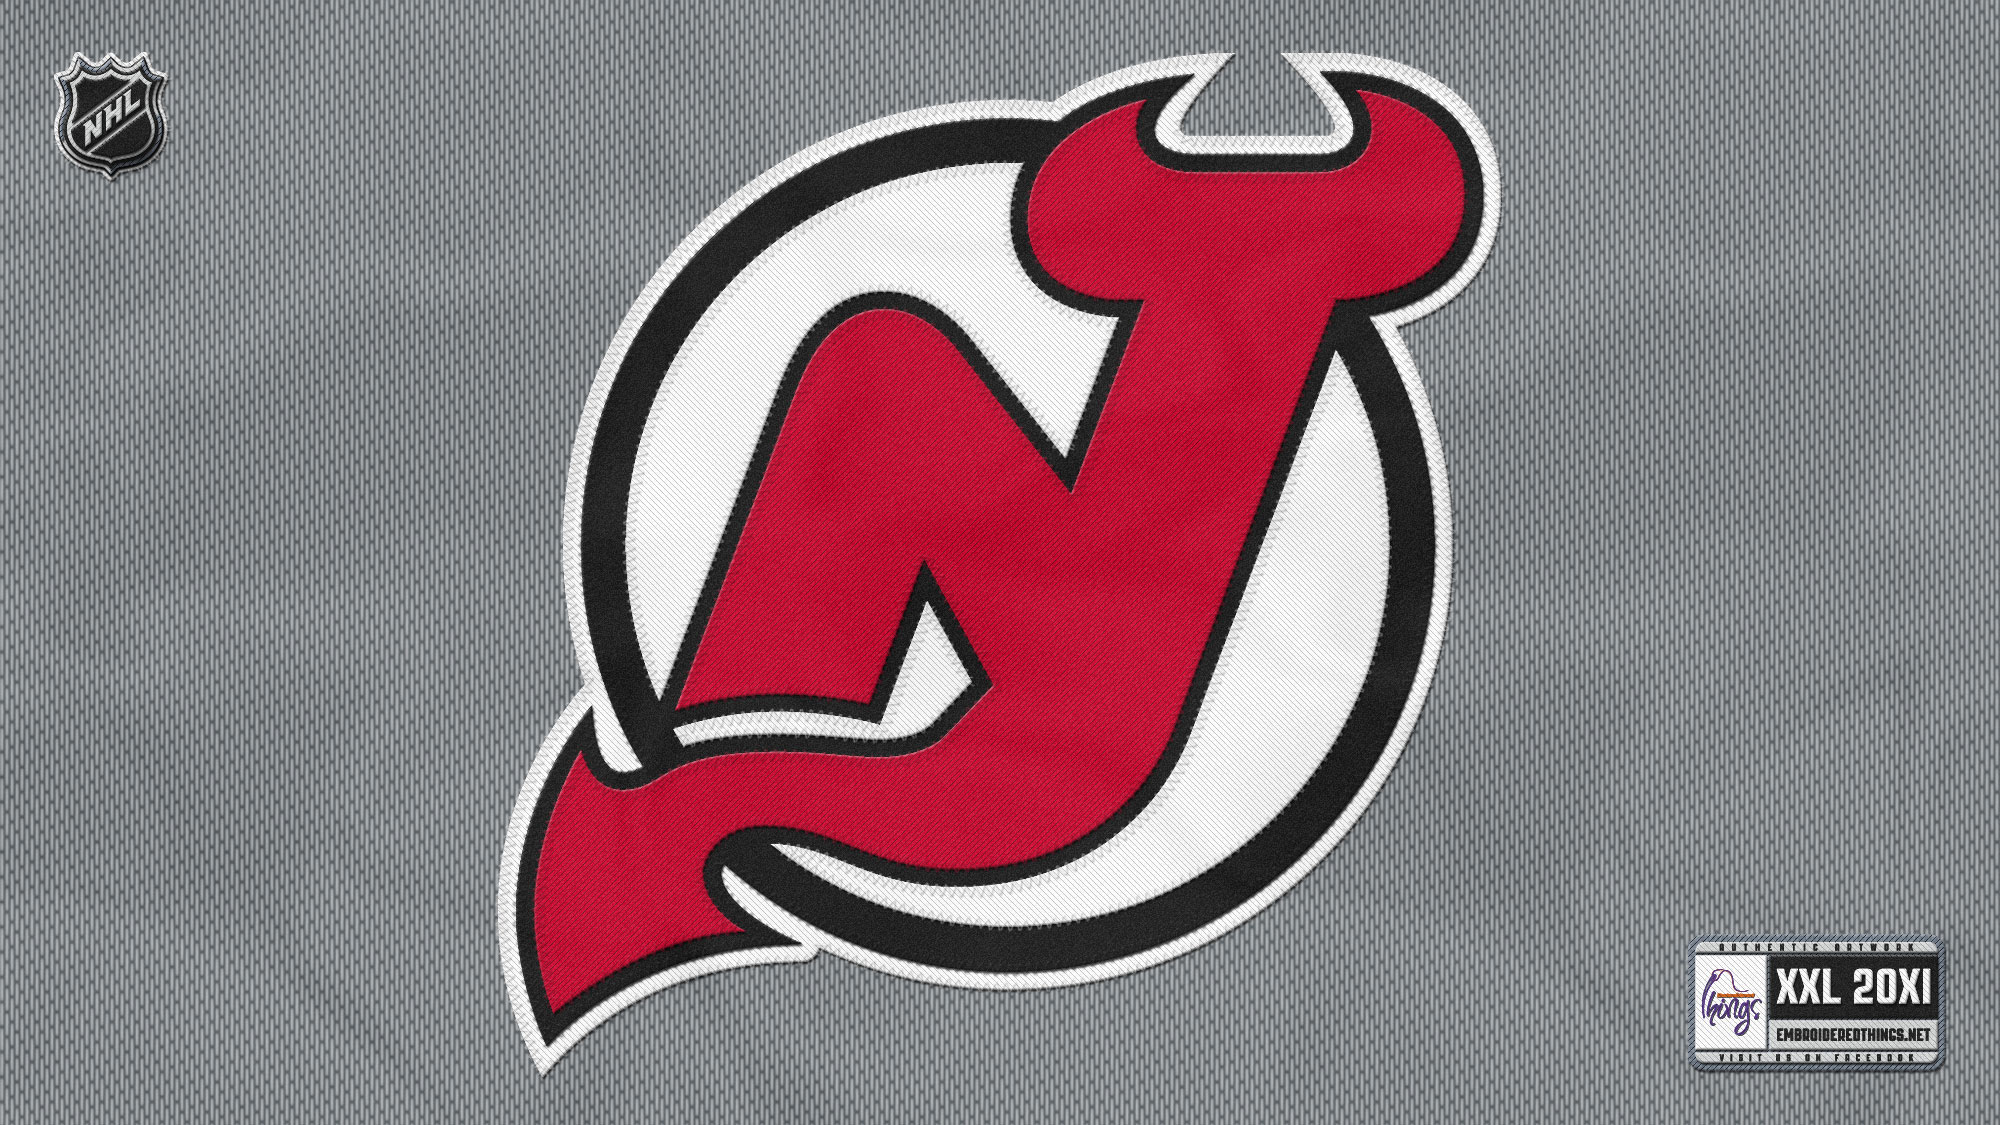 New Jersey Devils wallpapers New Jersey Devils background   Page 8 2000x1125